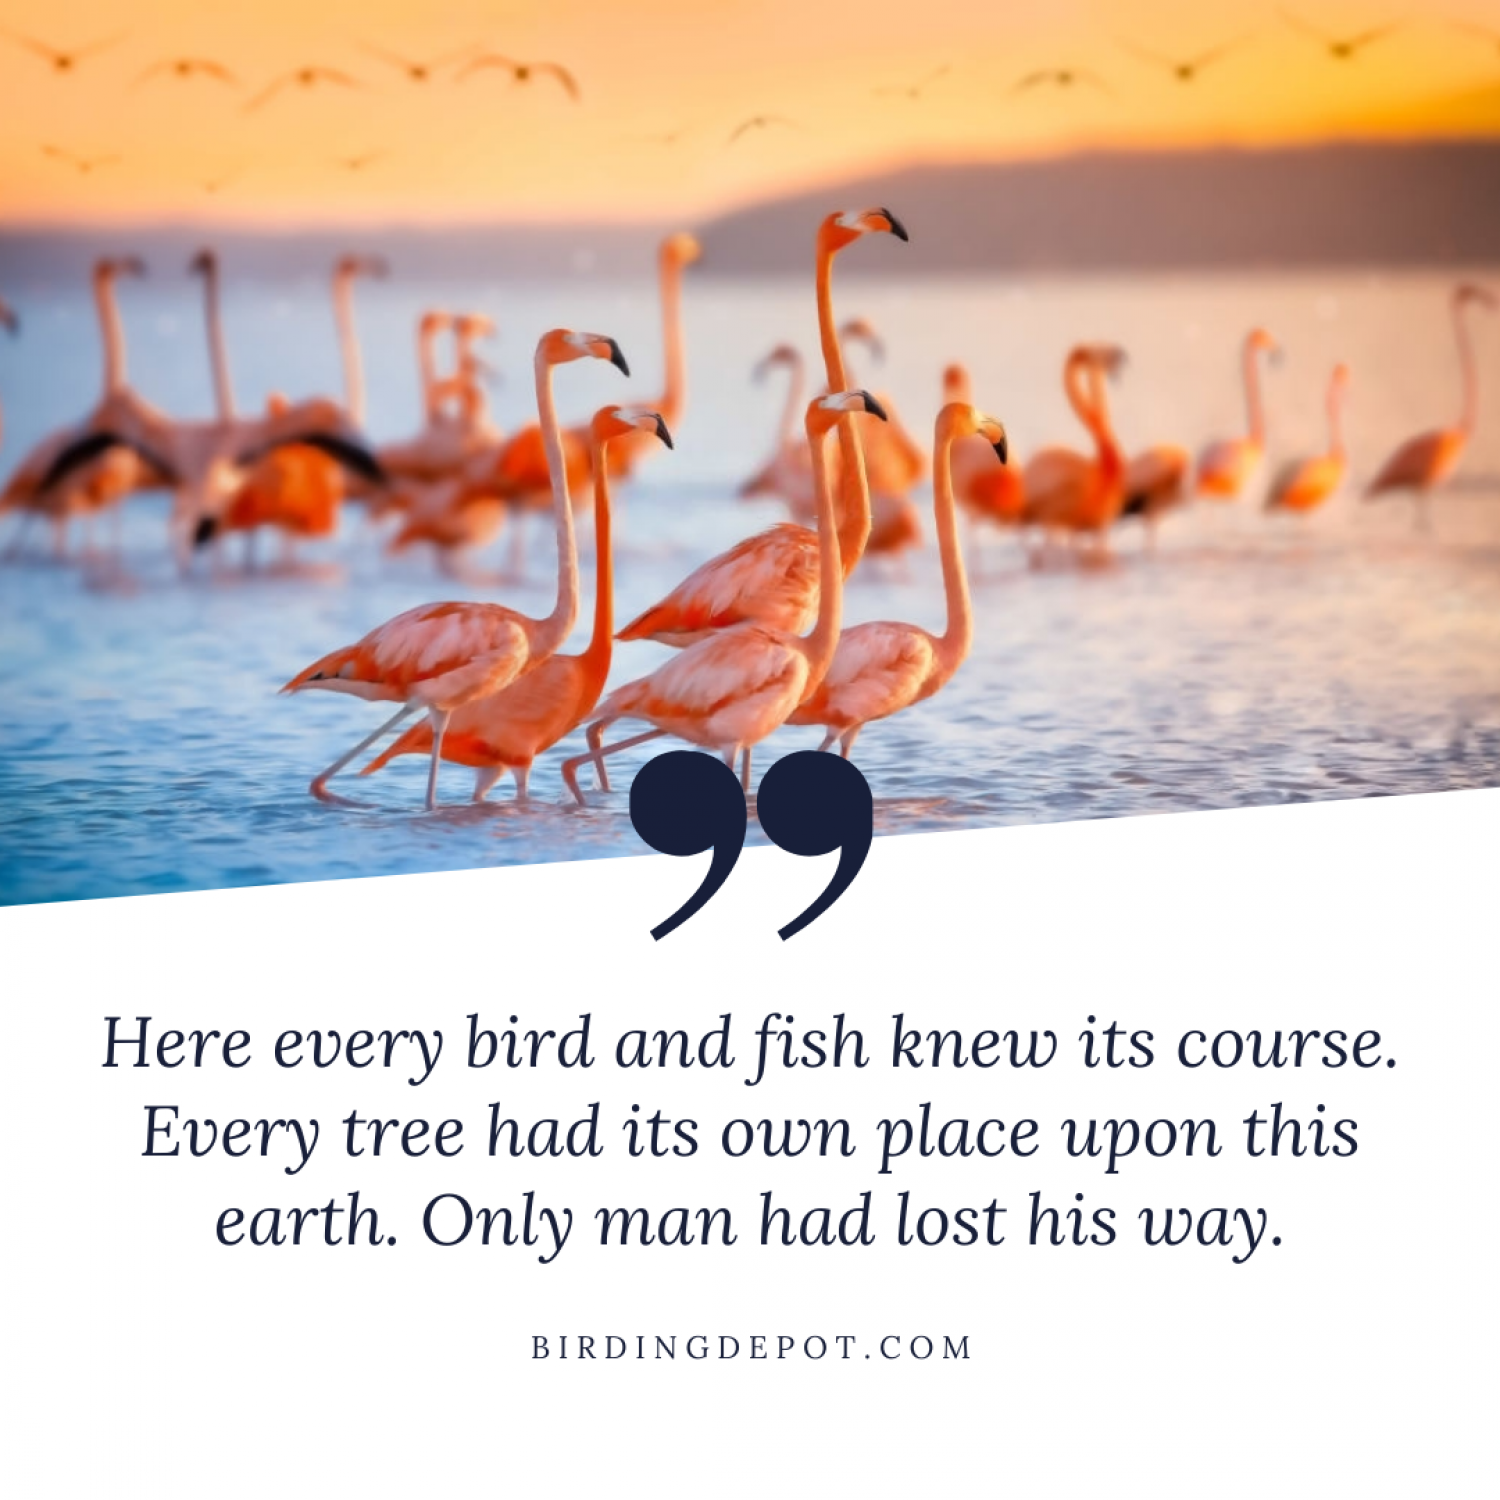 Here every bird and fish knew its course. Infographic